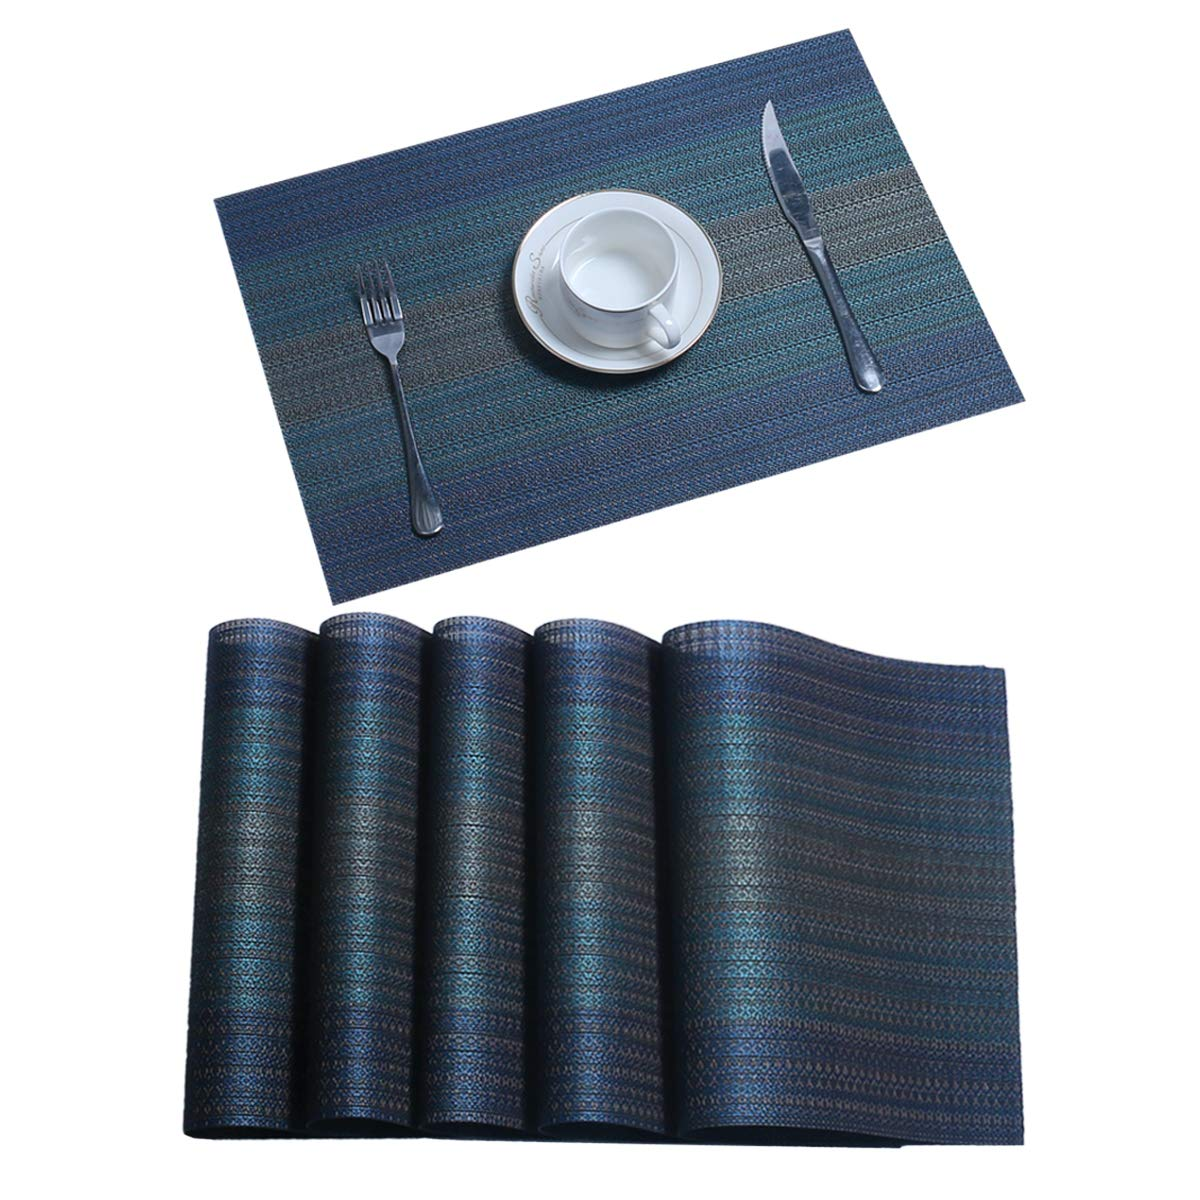 Pauwer Placemats Set of 8 for Dining Table Woven Vinyl Kitchen Place Mat Heat Insulation Non-Slip Table Mats Easy to Clean